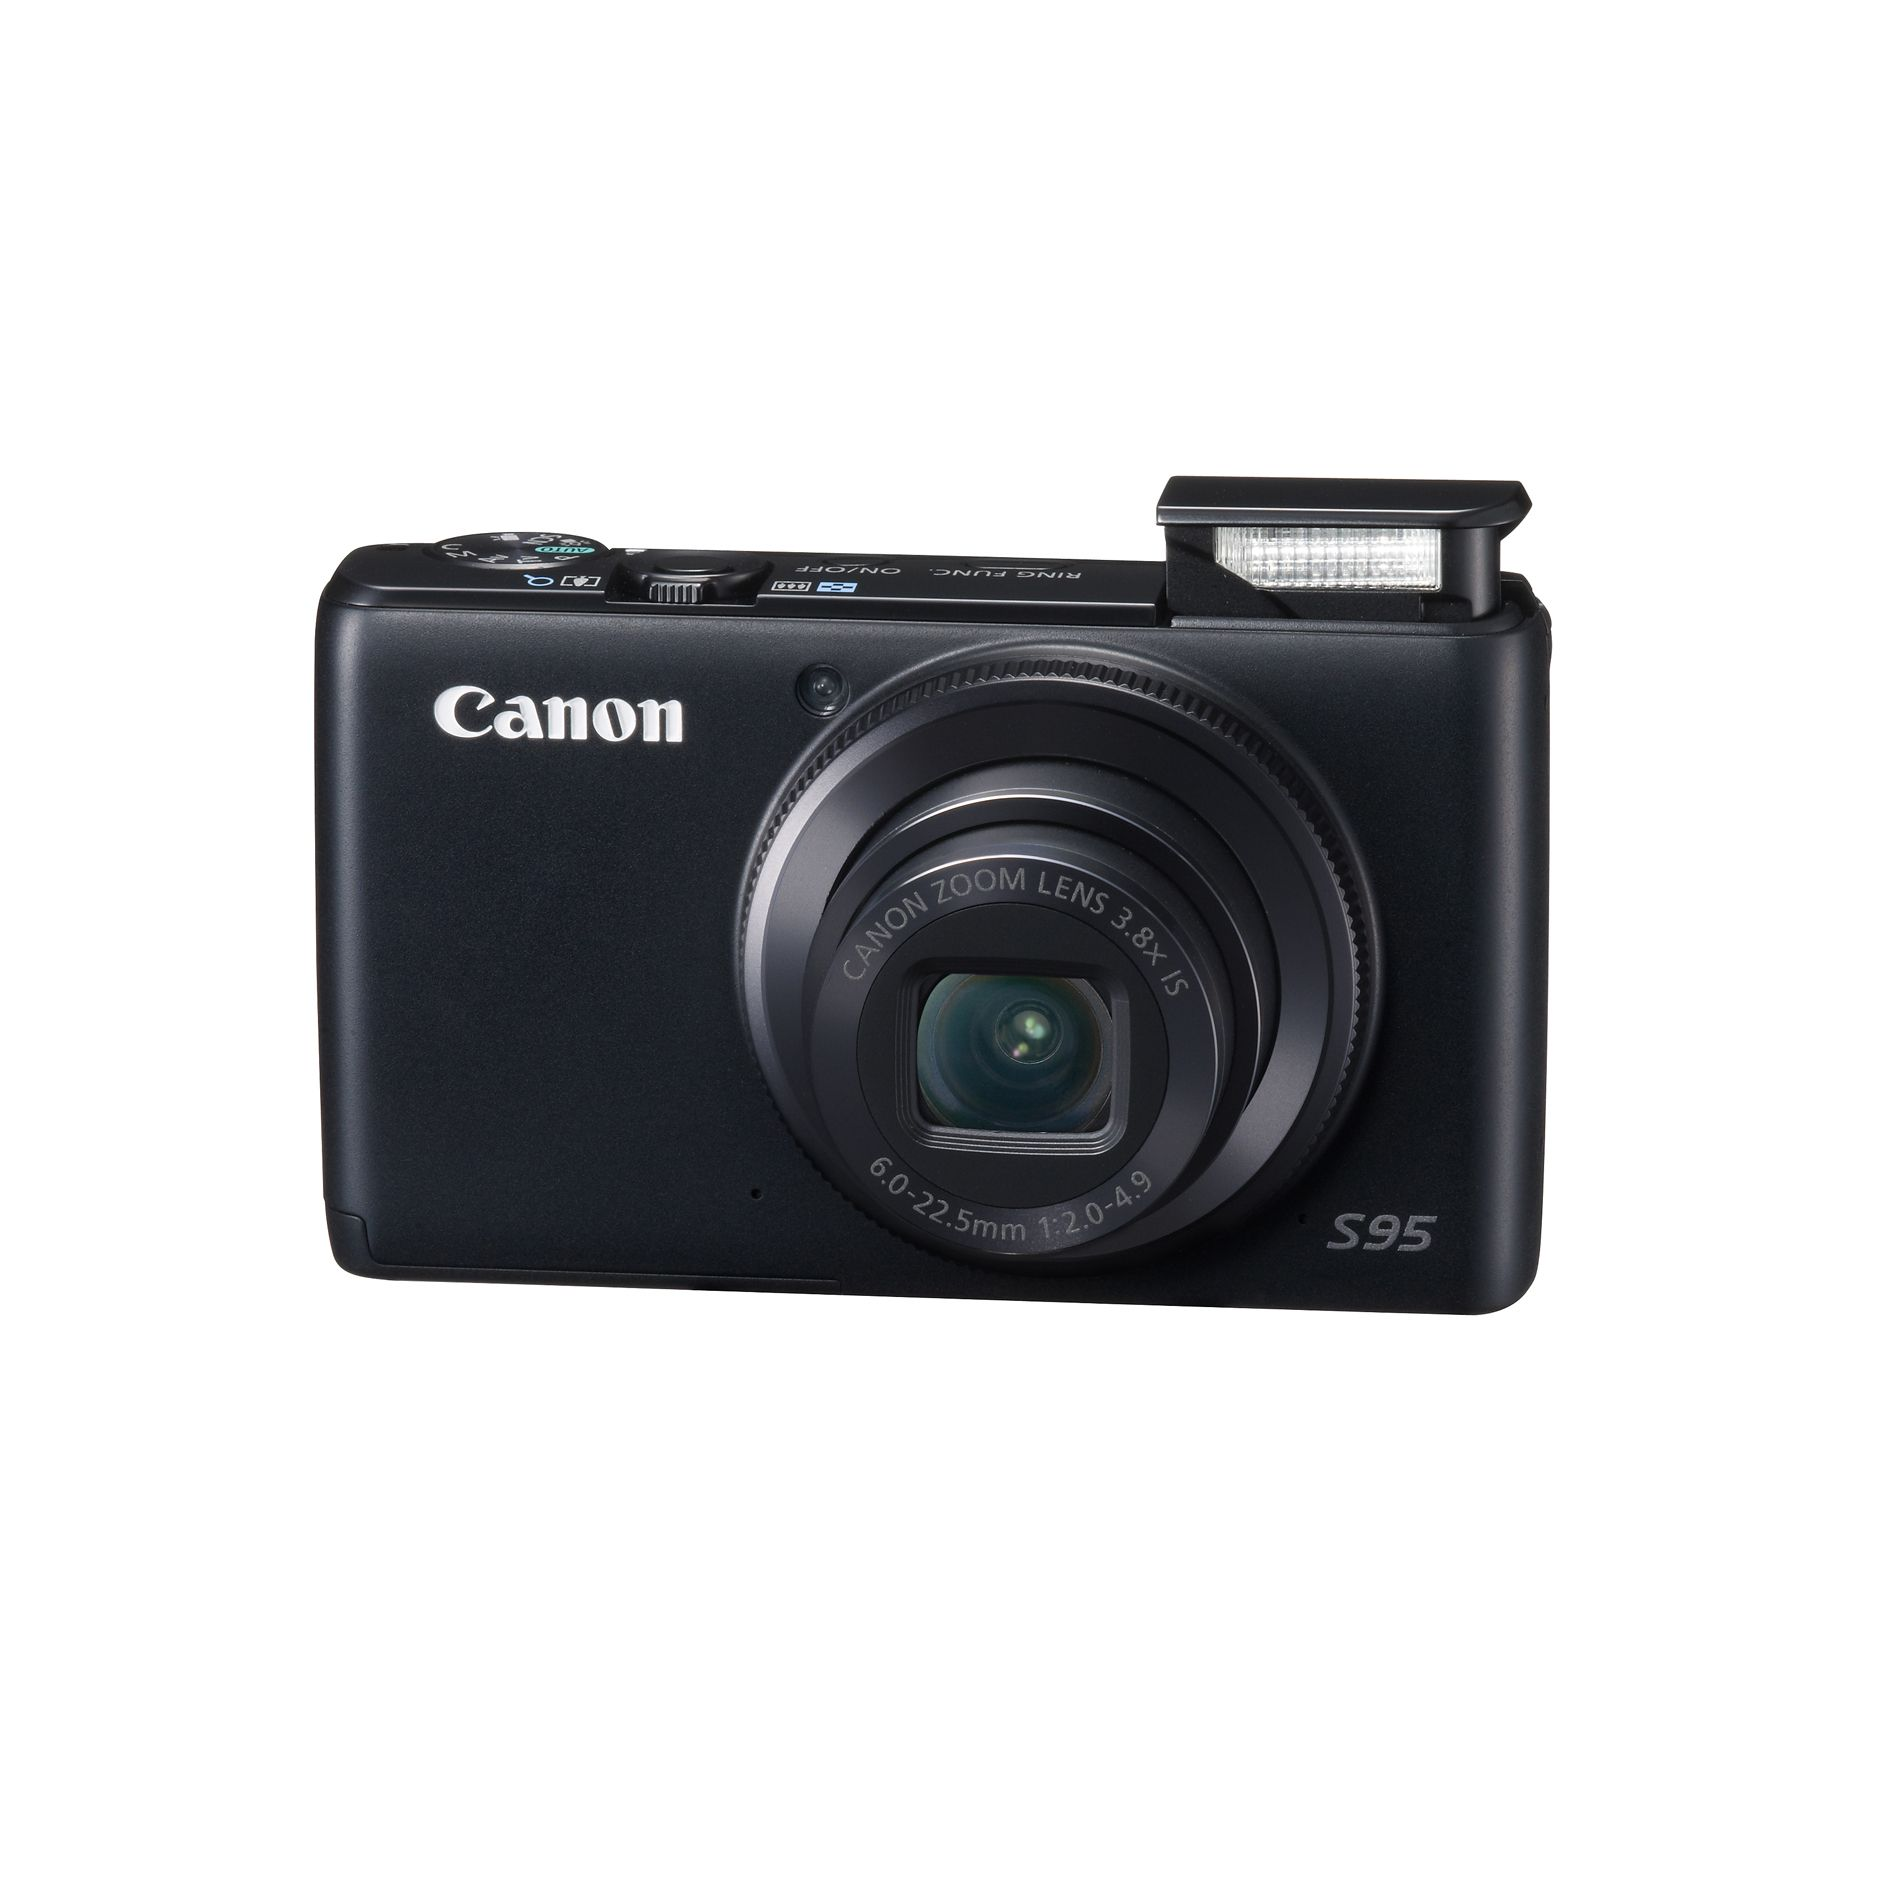 Canon PowerShot S95 Digital Camera - Black